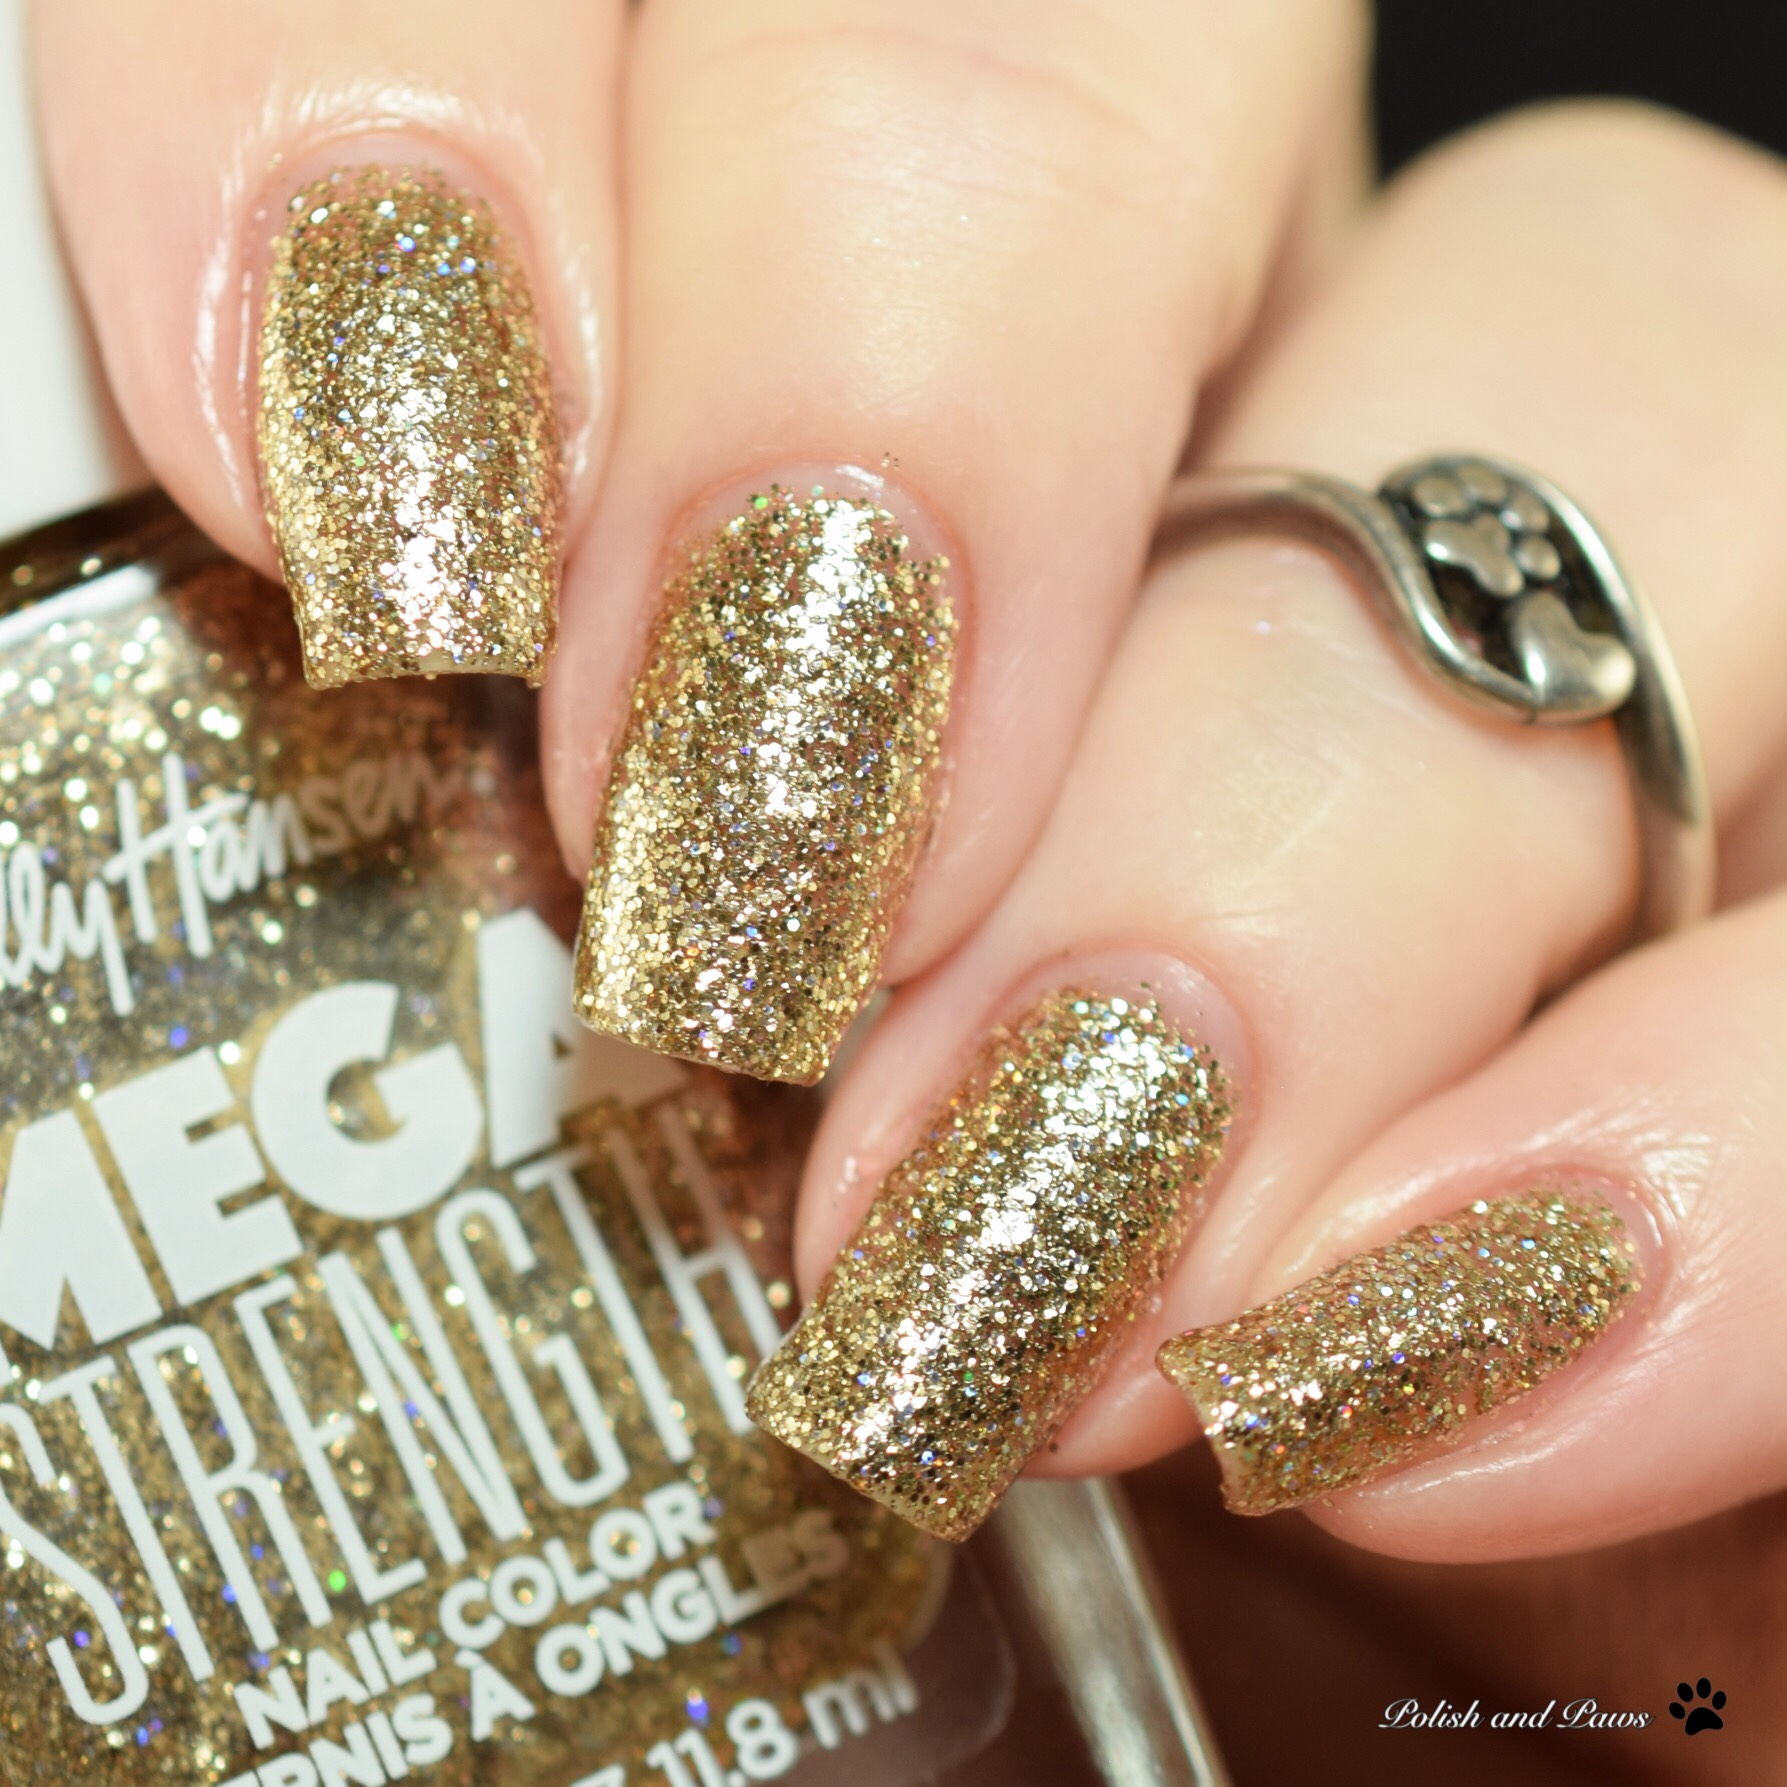 Sally Hansen Wild Card